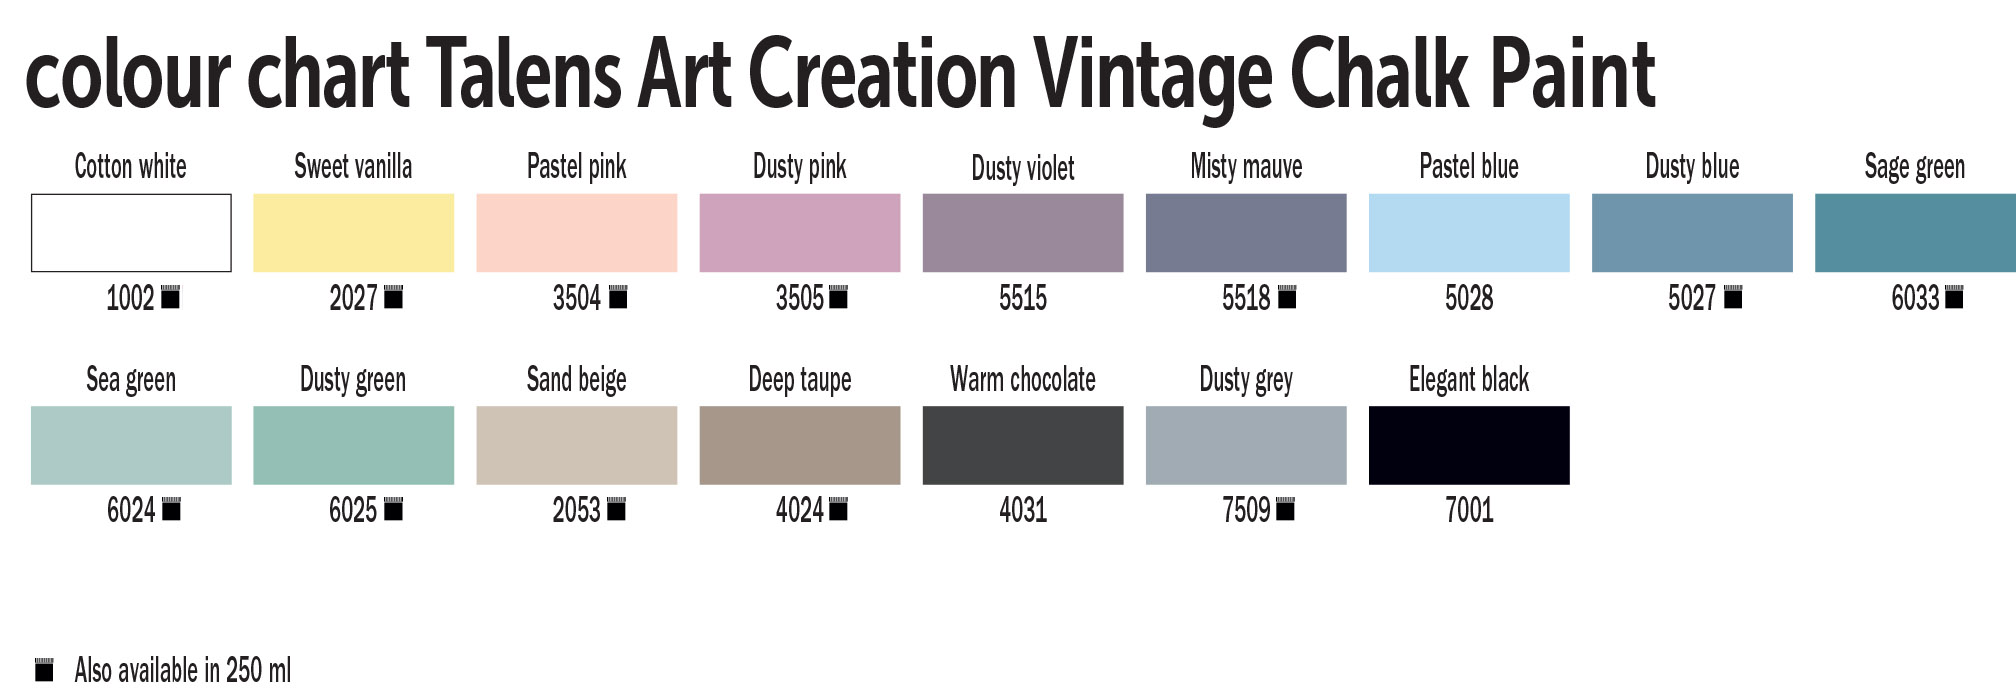 TAC Vintage chalk paint